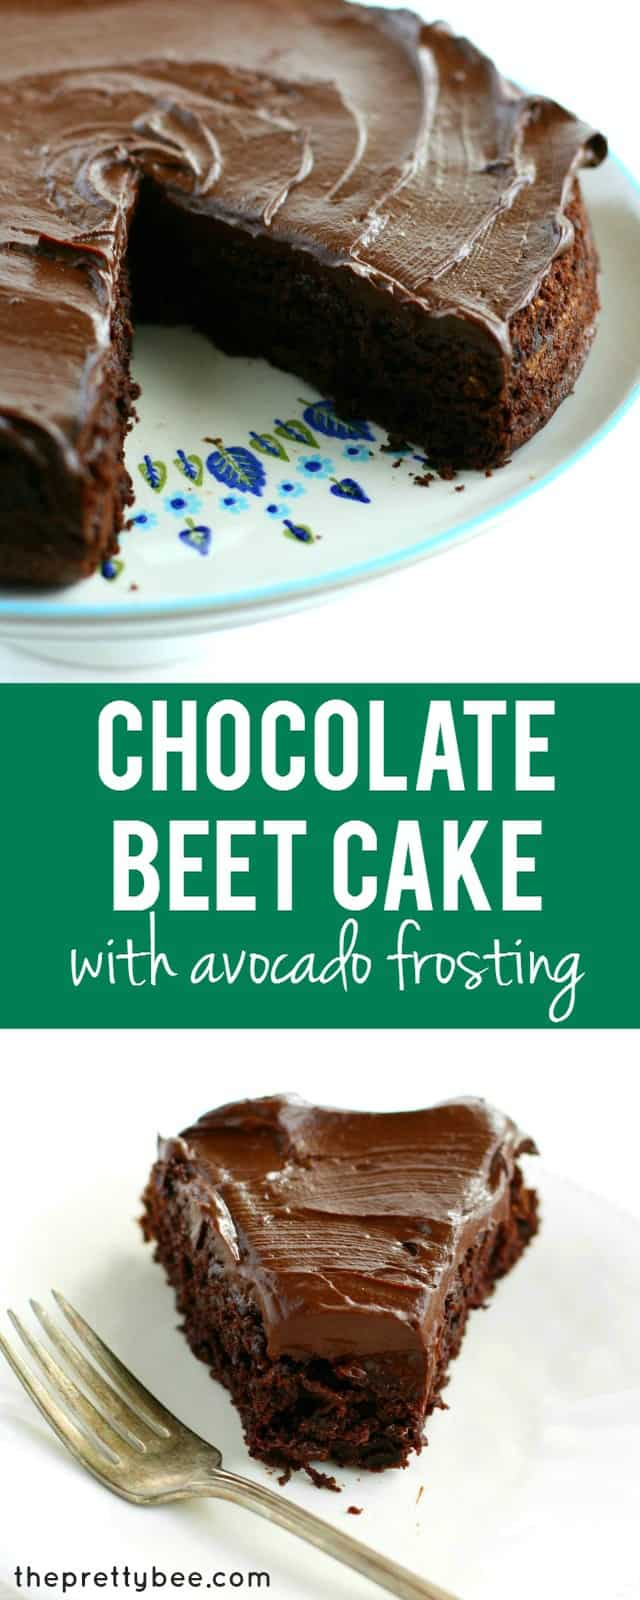 An easy recipe for chocolate beet cake with chocolate avocado frosting. It's not only incredibly delicious, it's also a healthier dessert choice!